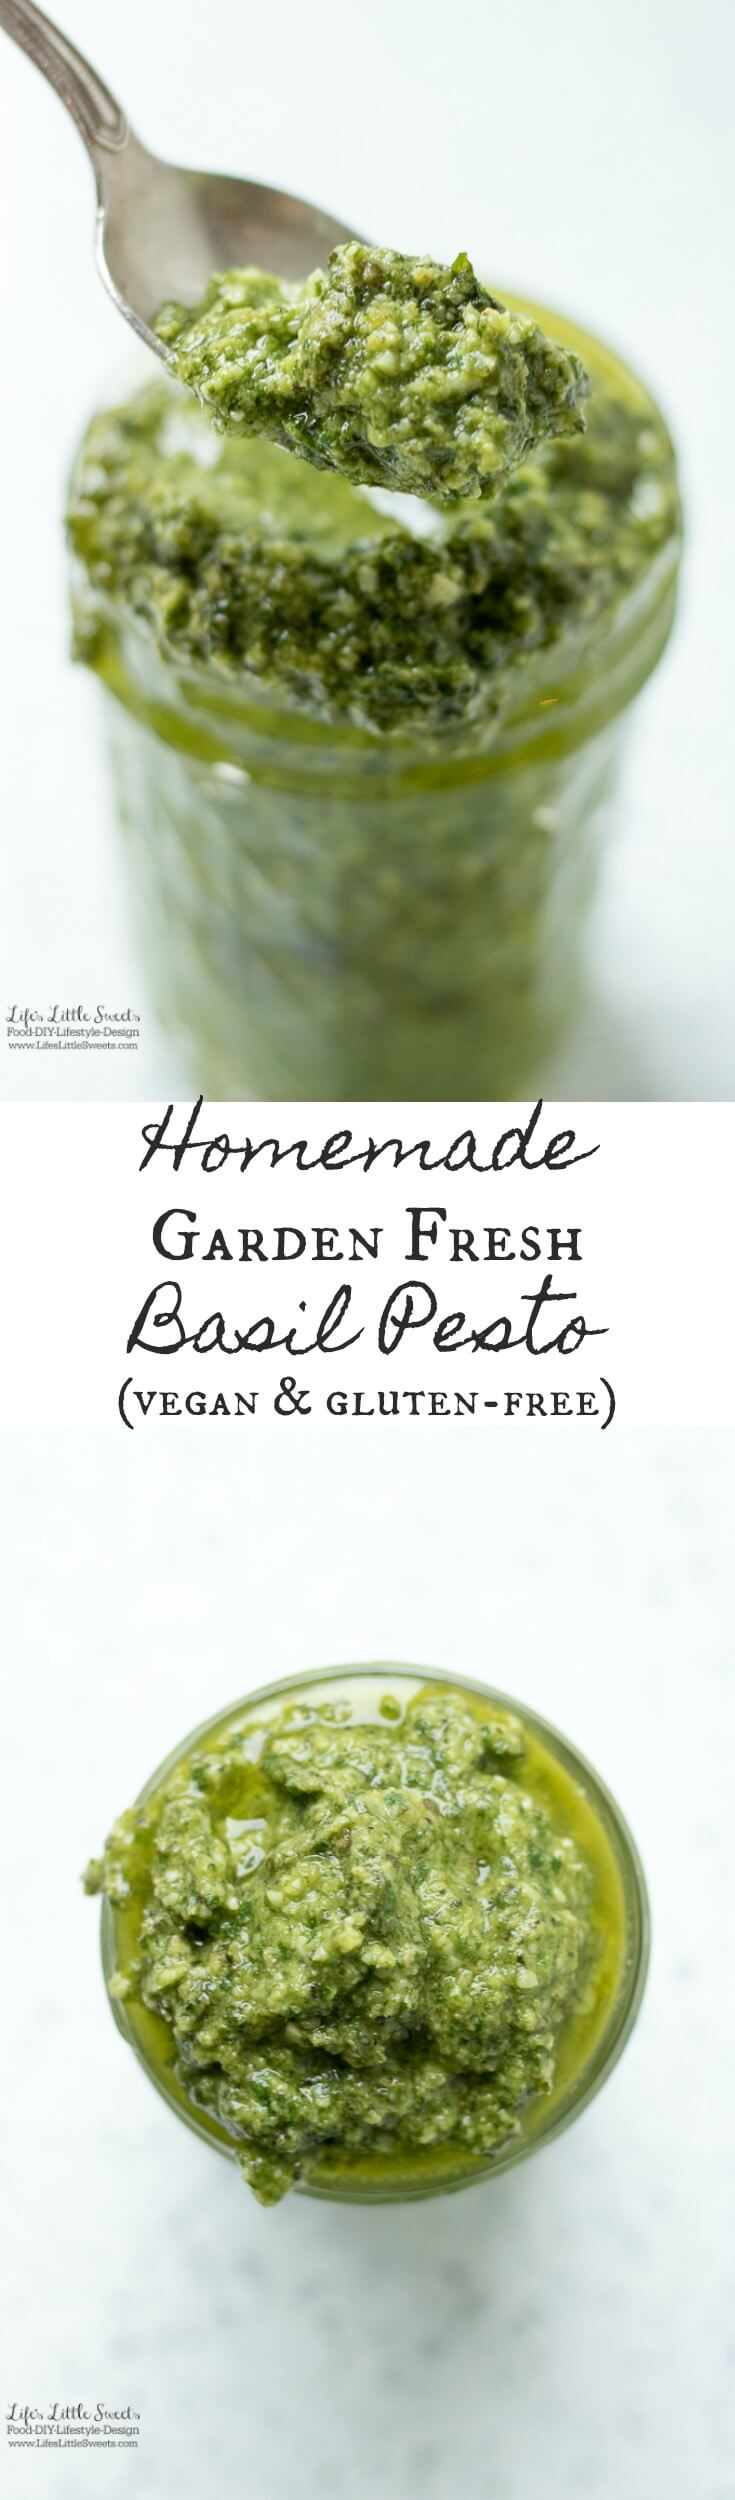 (vegan, gluten-free) Homemade Garden Fresh Basil Pesto has garden fresh flavor, is a great way to use up basil from the garden and goes amazing over pasta or as a marinade for fish or chicken.